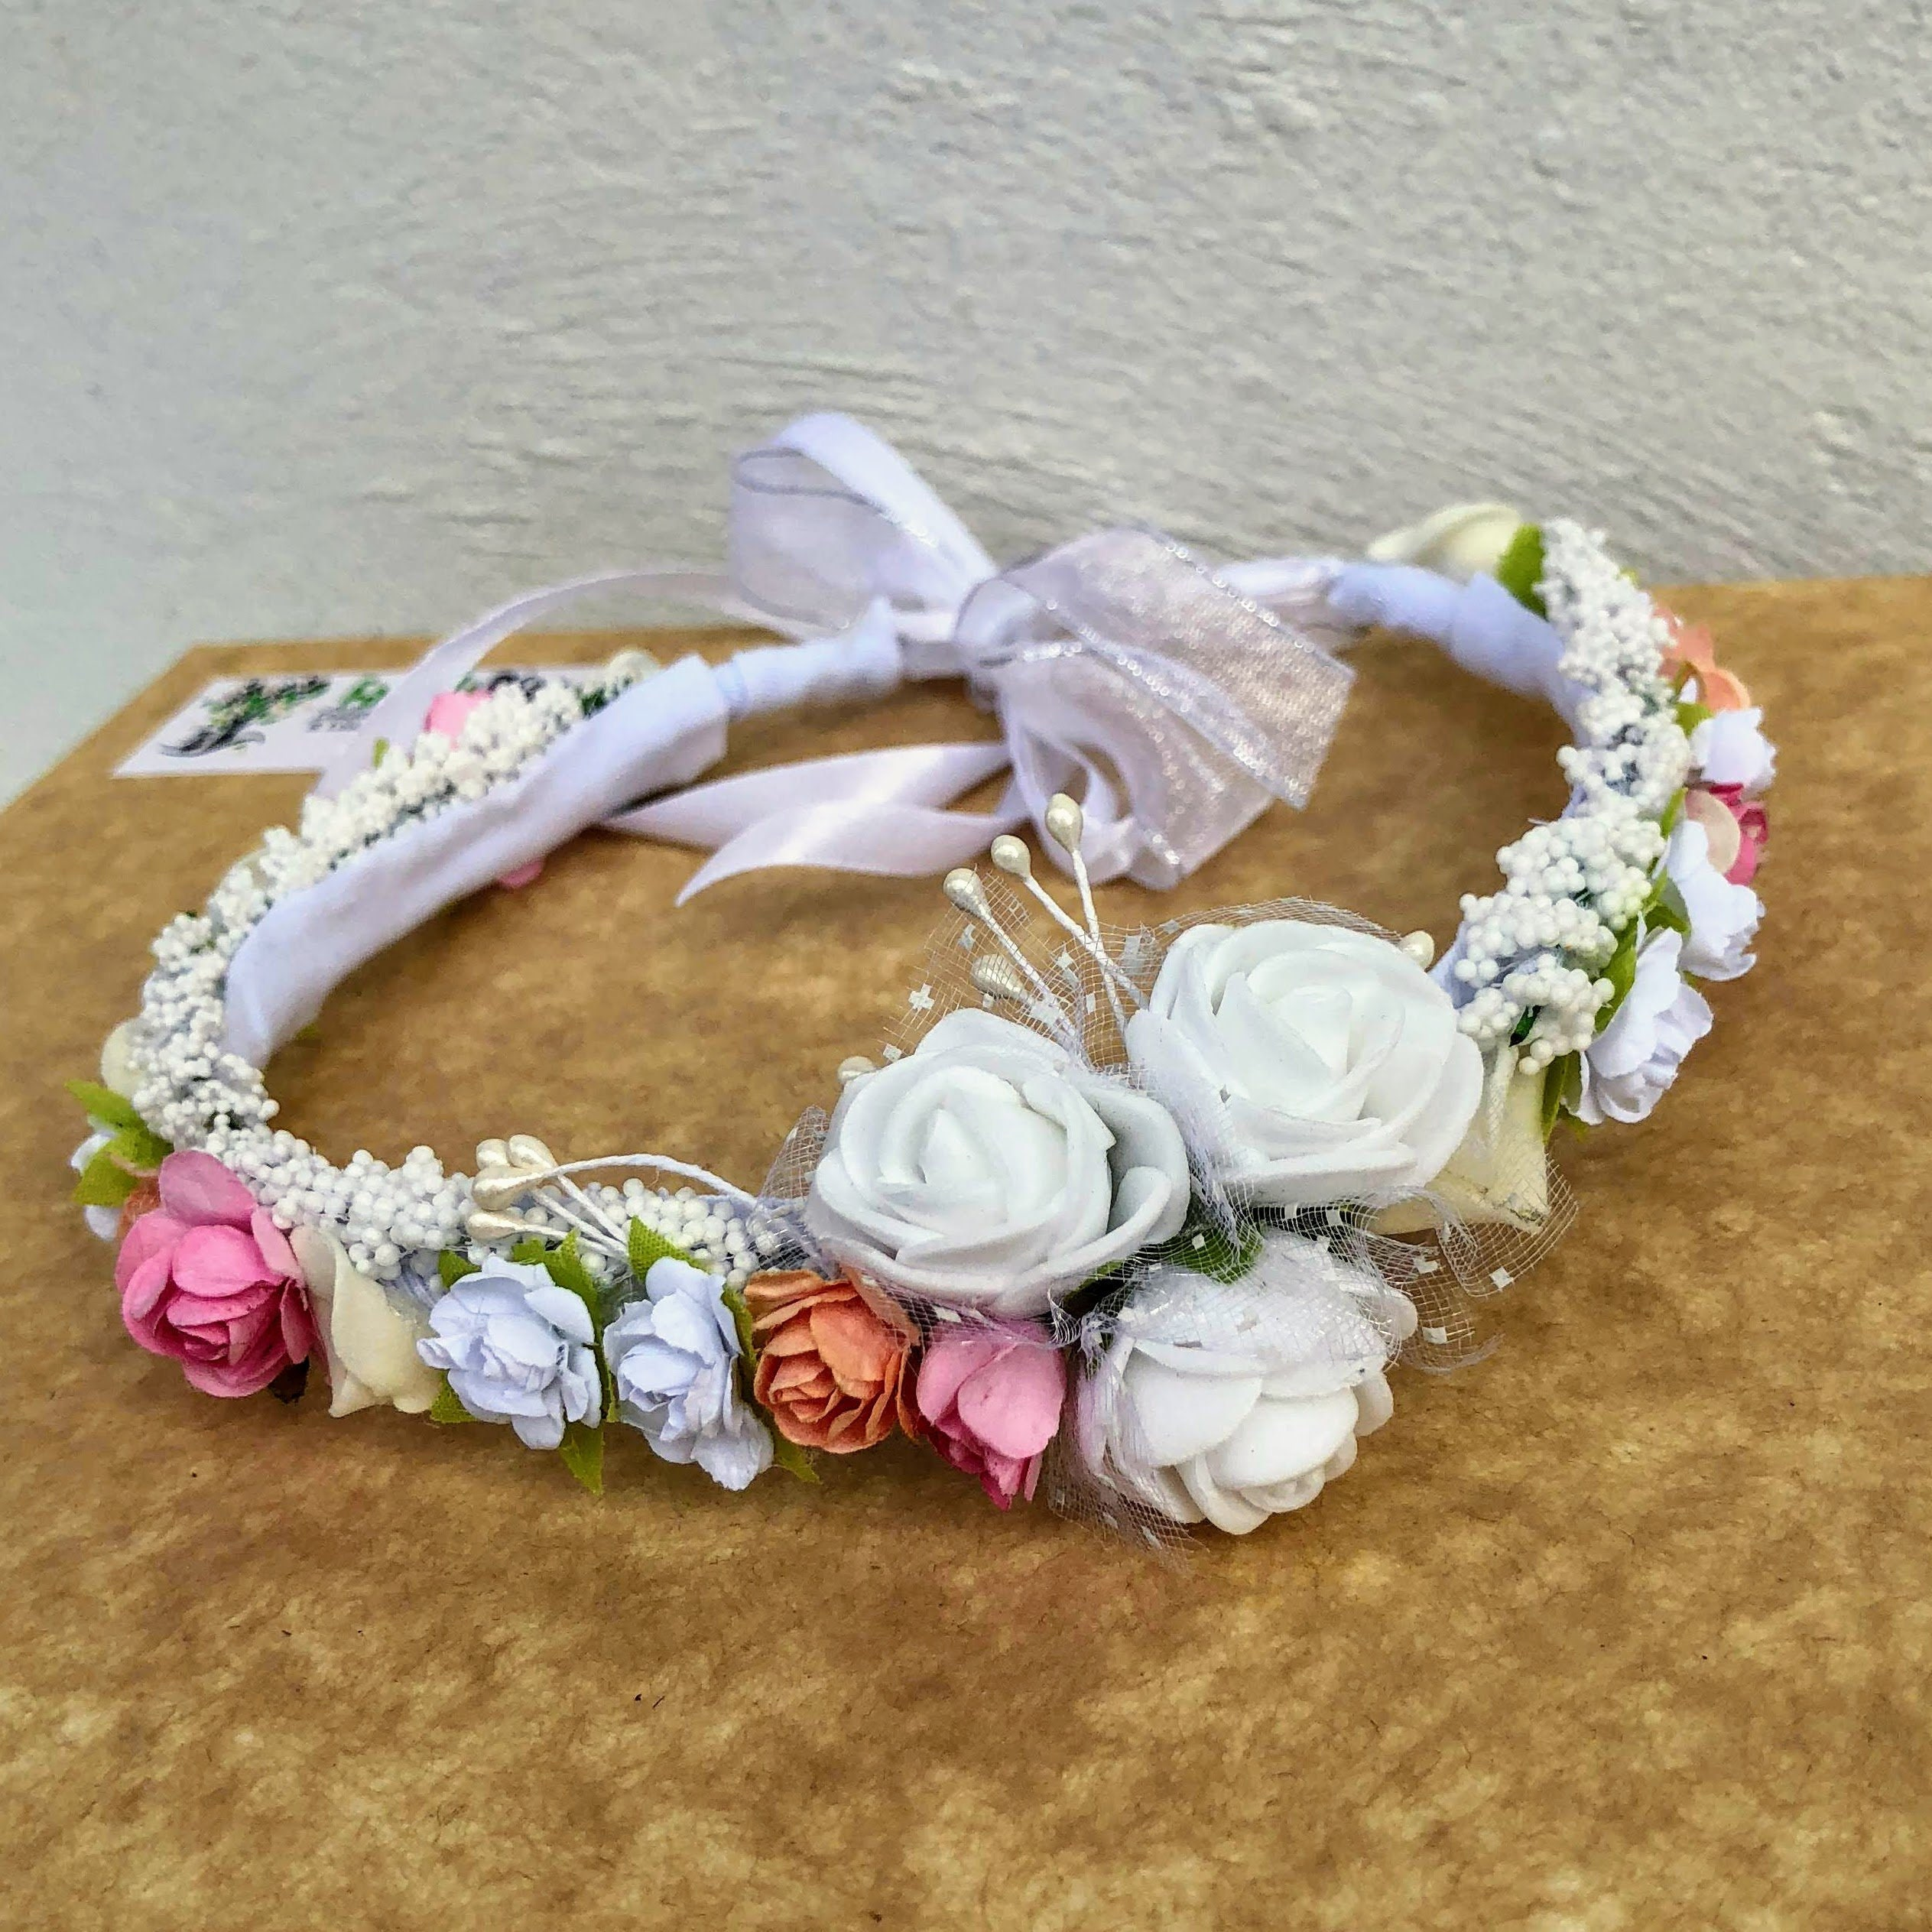 Flower Crown Newborn Crown Infant Flower Crown Baby Flower Crown